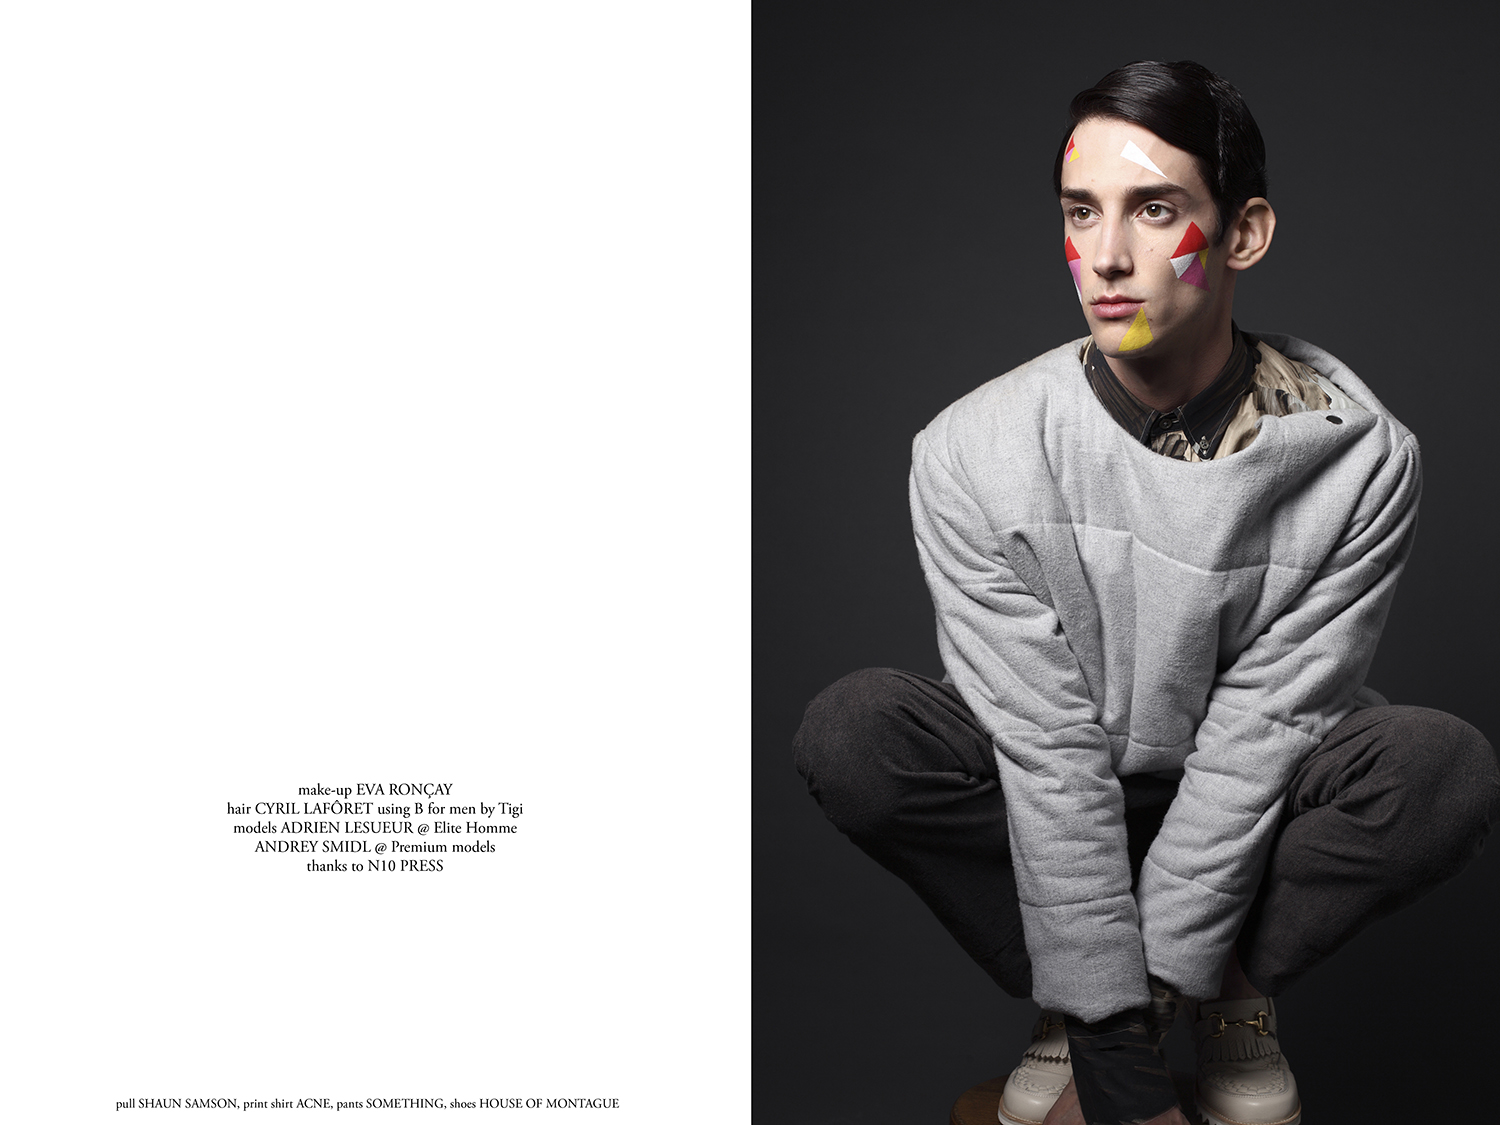 PLAYERS by Elodie Chapuis - CHASSEUR MAGAZINE